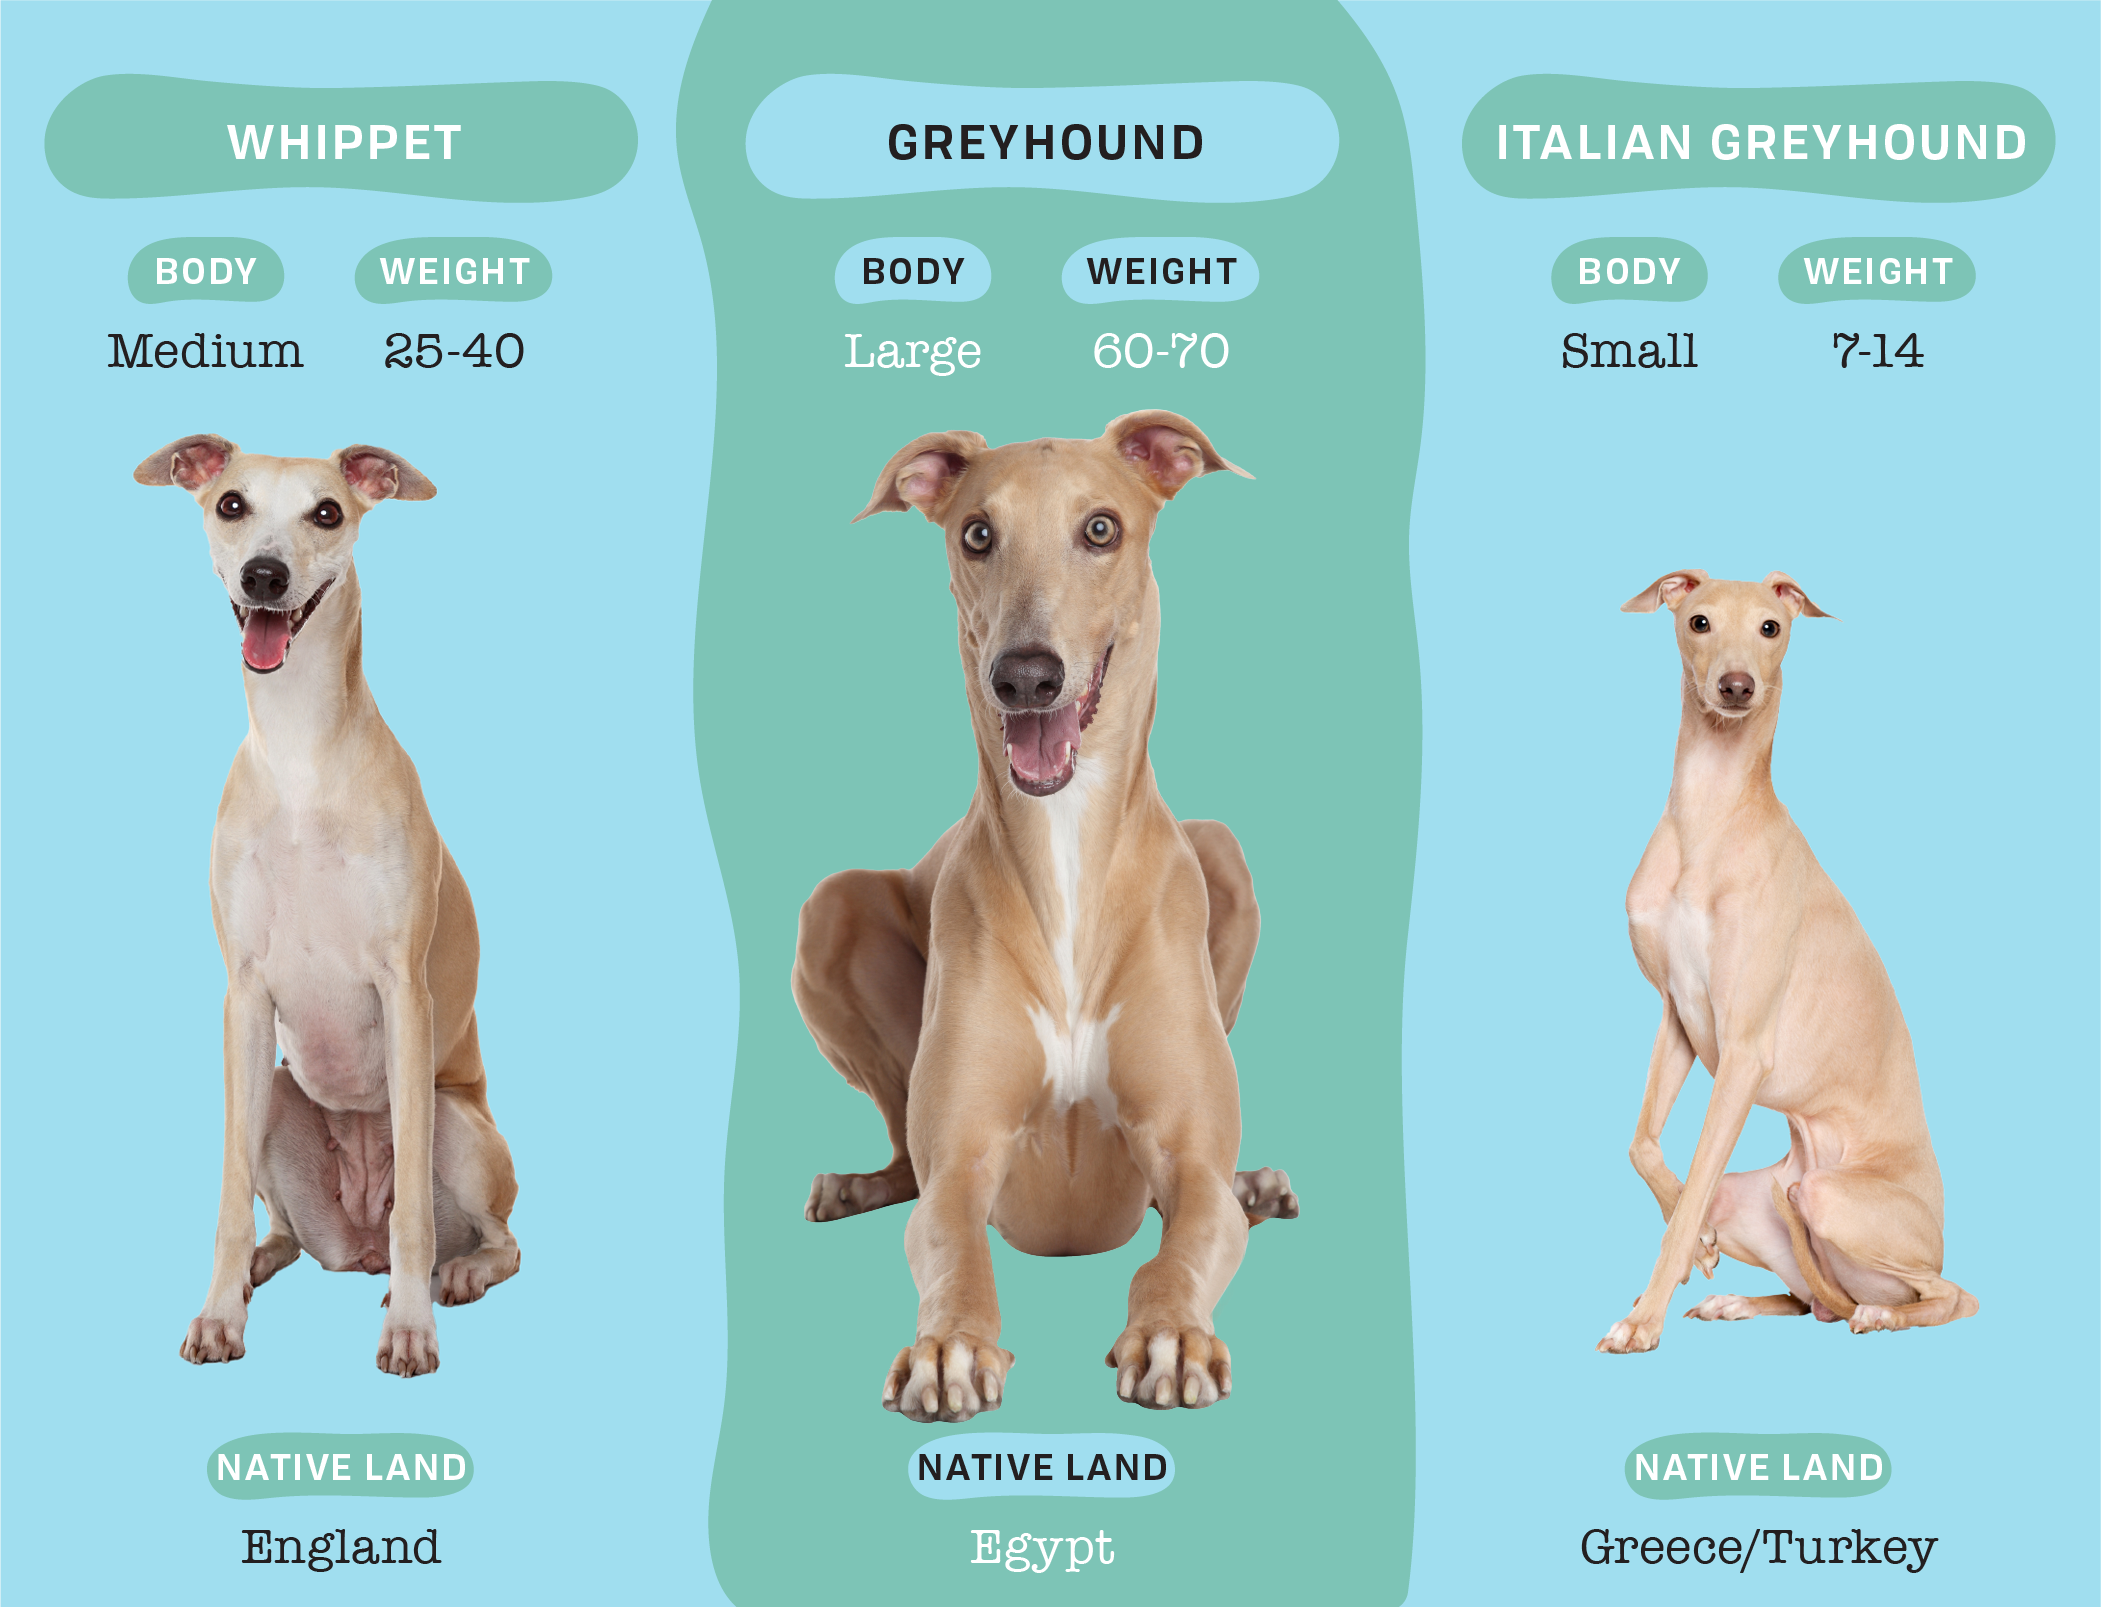 infographic comparing greyhound, italian greyhound and whippet dog breed physical characteristics dogs on blue and green background